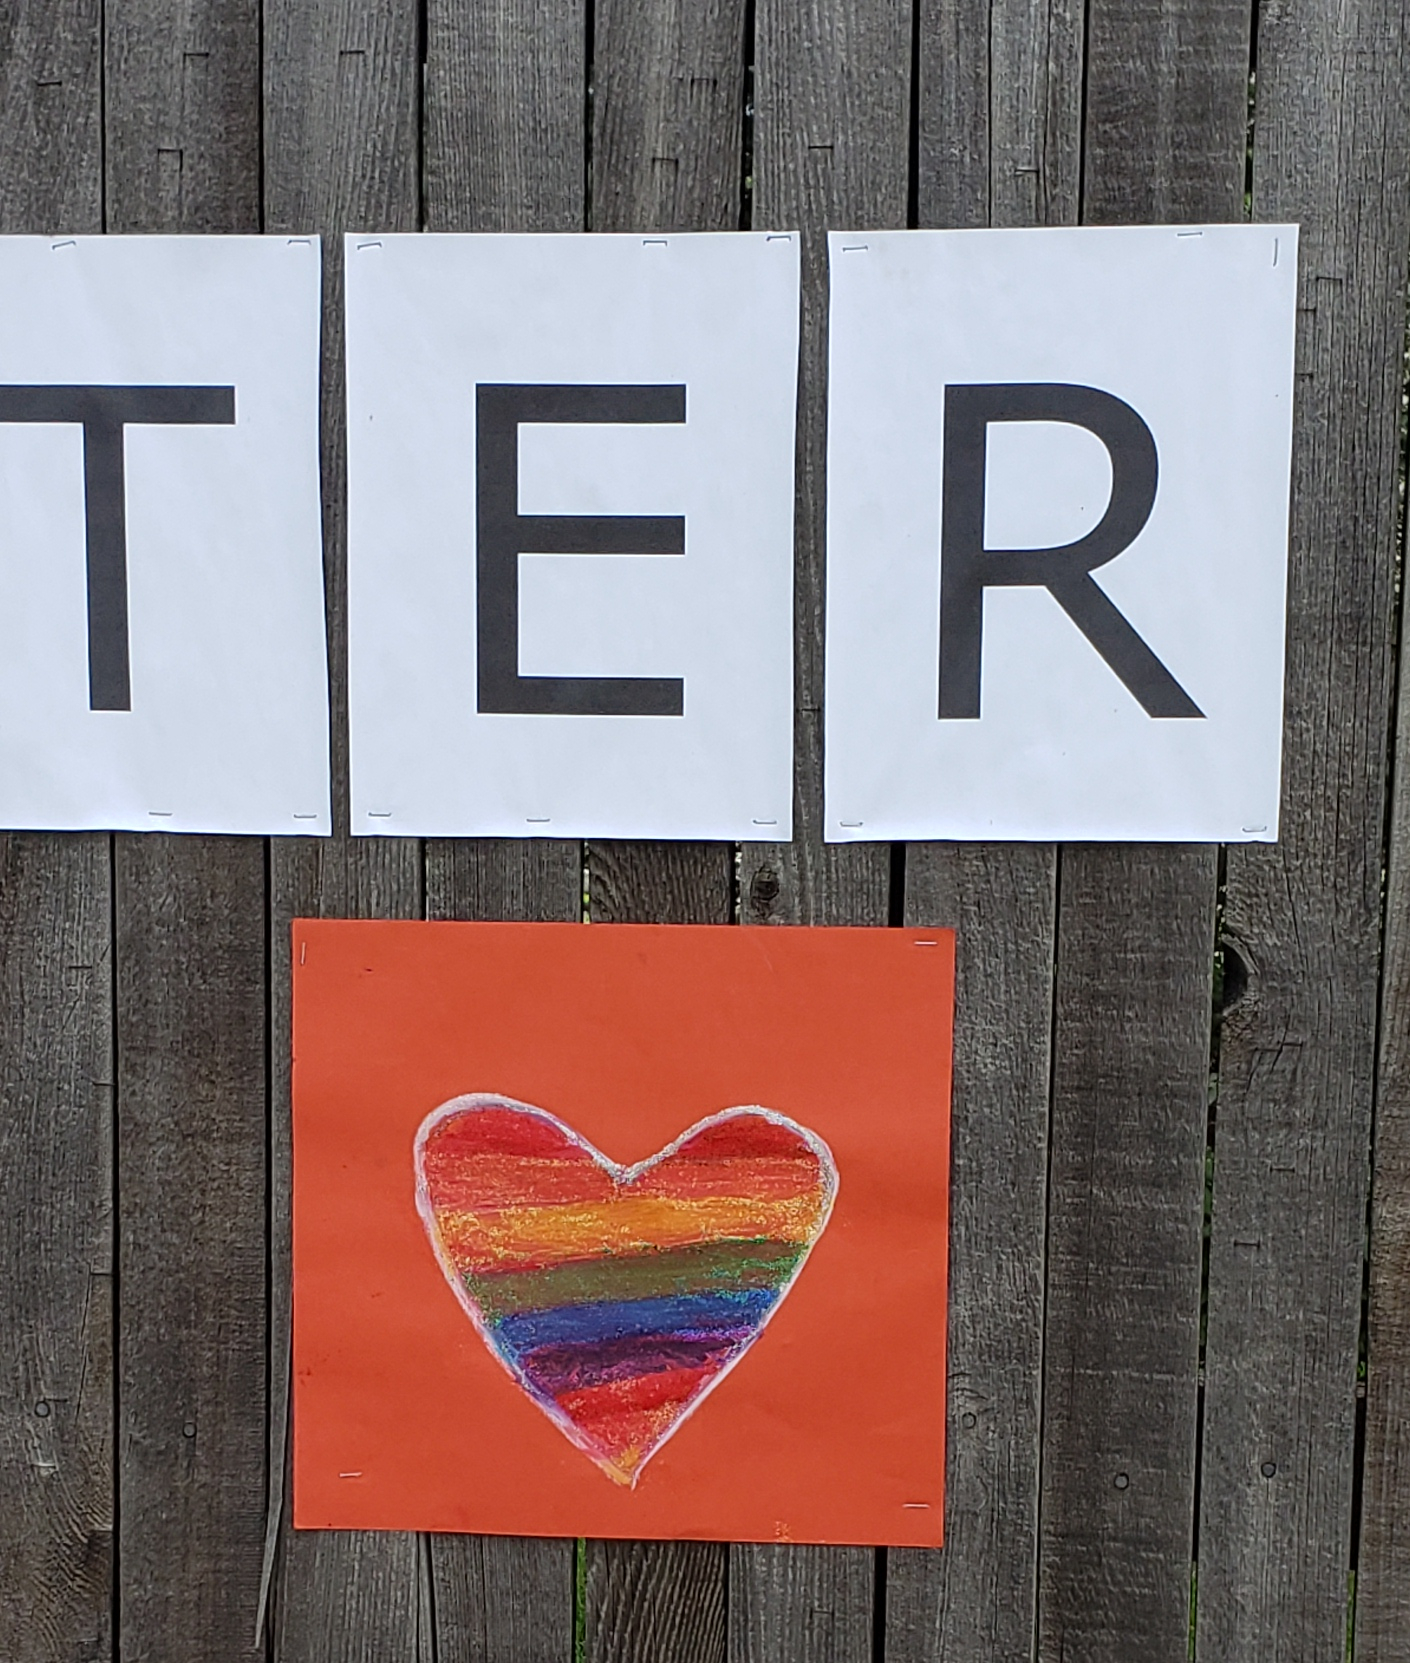 Orange construction paper sign with a heart outlined in white and filled in with rainbow colors.